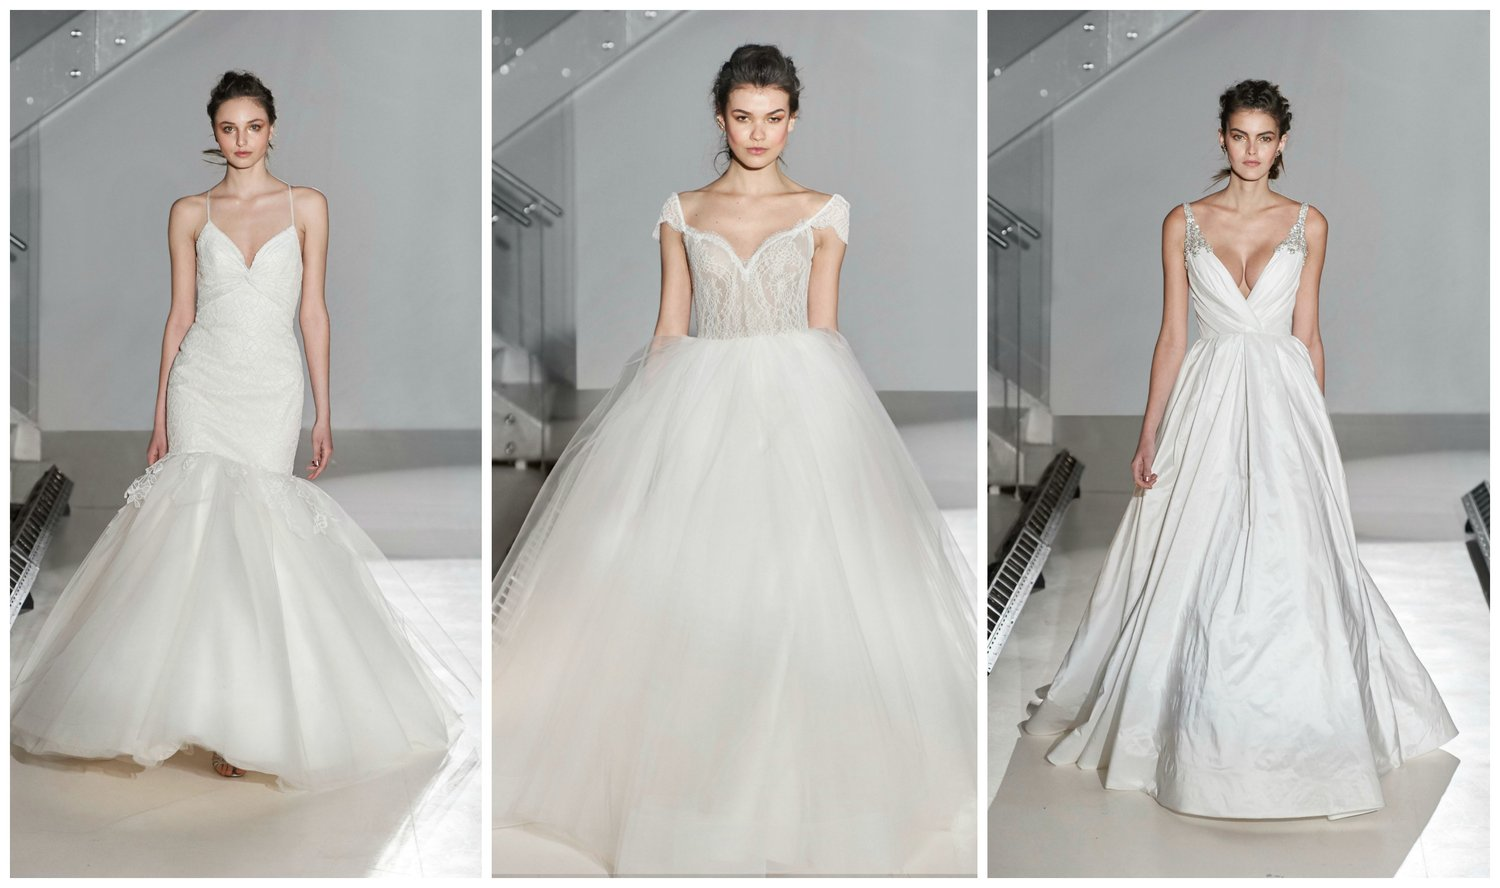 Jim Helm by Hayley Paige Bridal Collection - Fall 2016